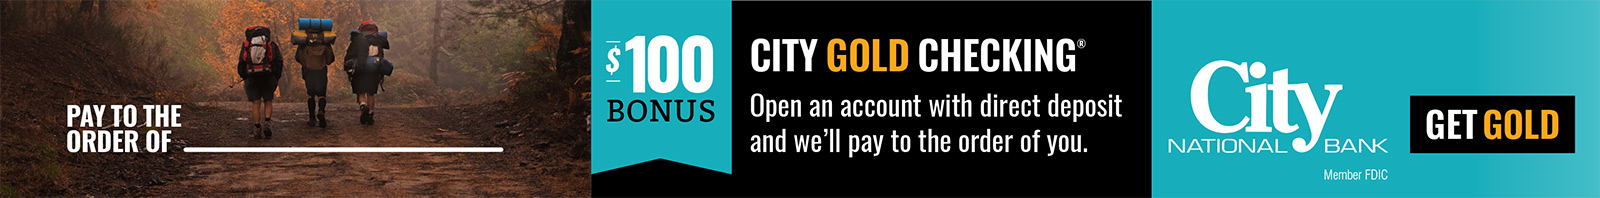 City National Bank, Pay to the Order Of Digital Ad